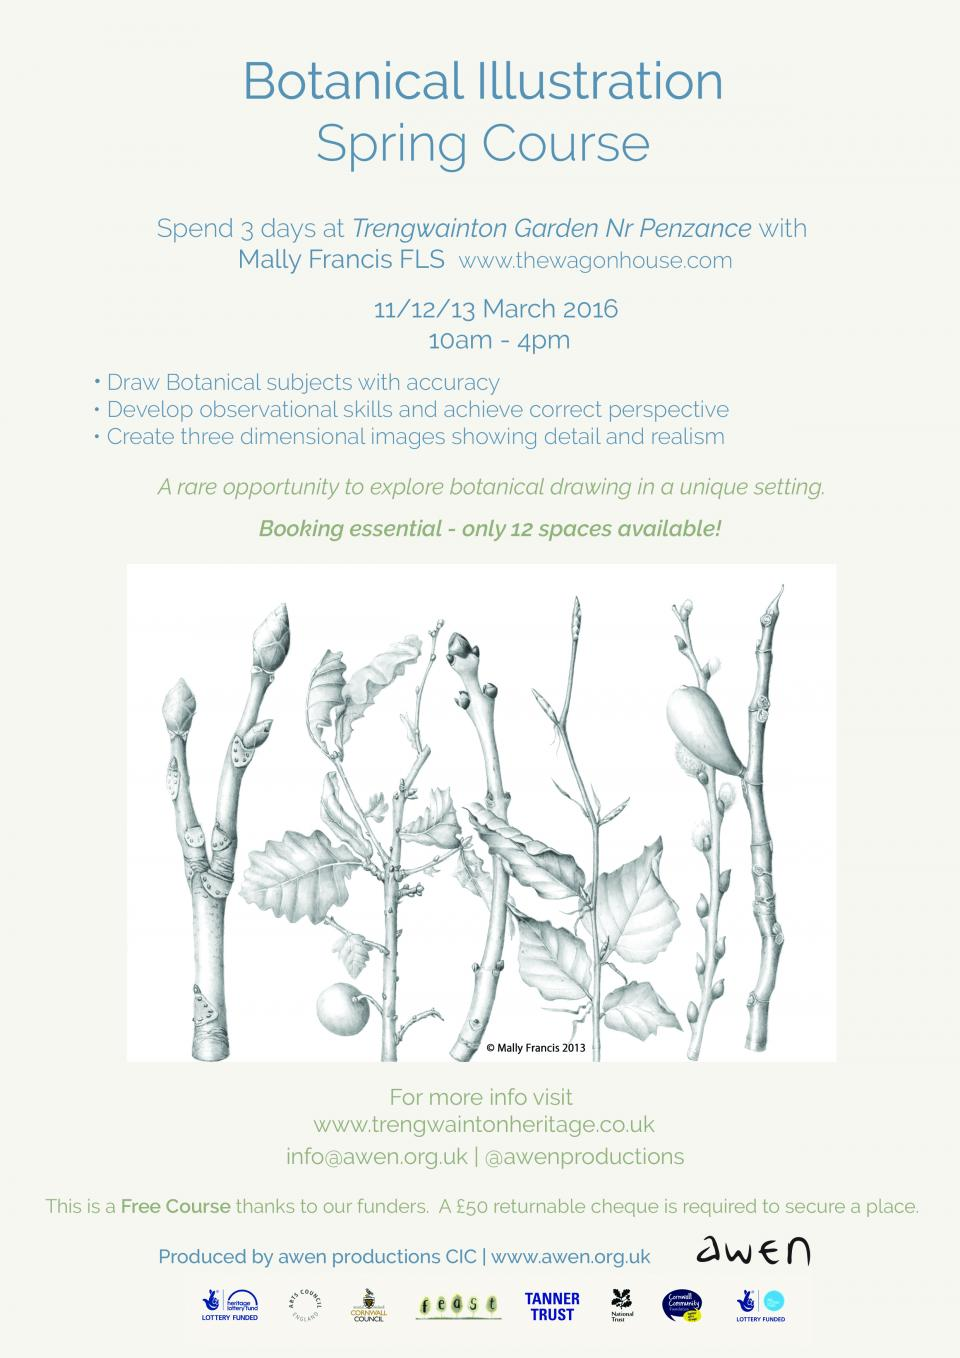 Botanical illustration Spring course